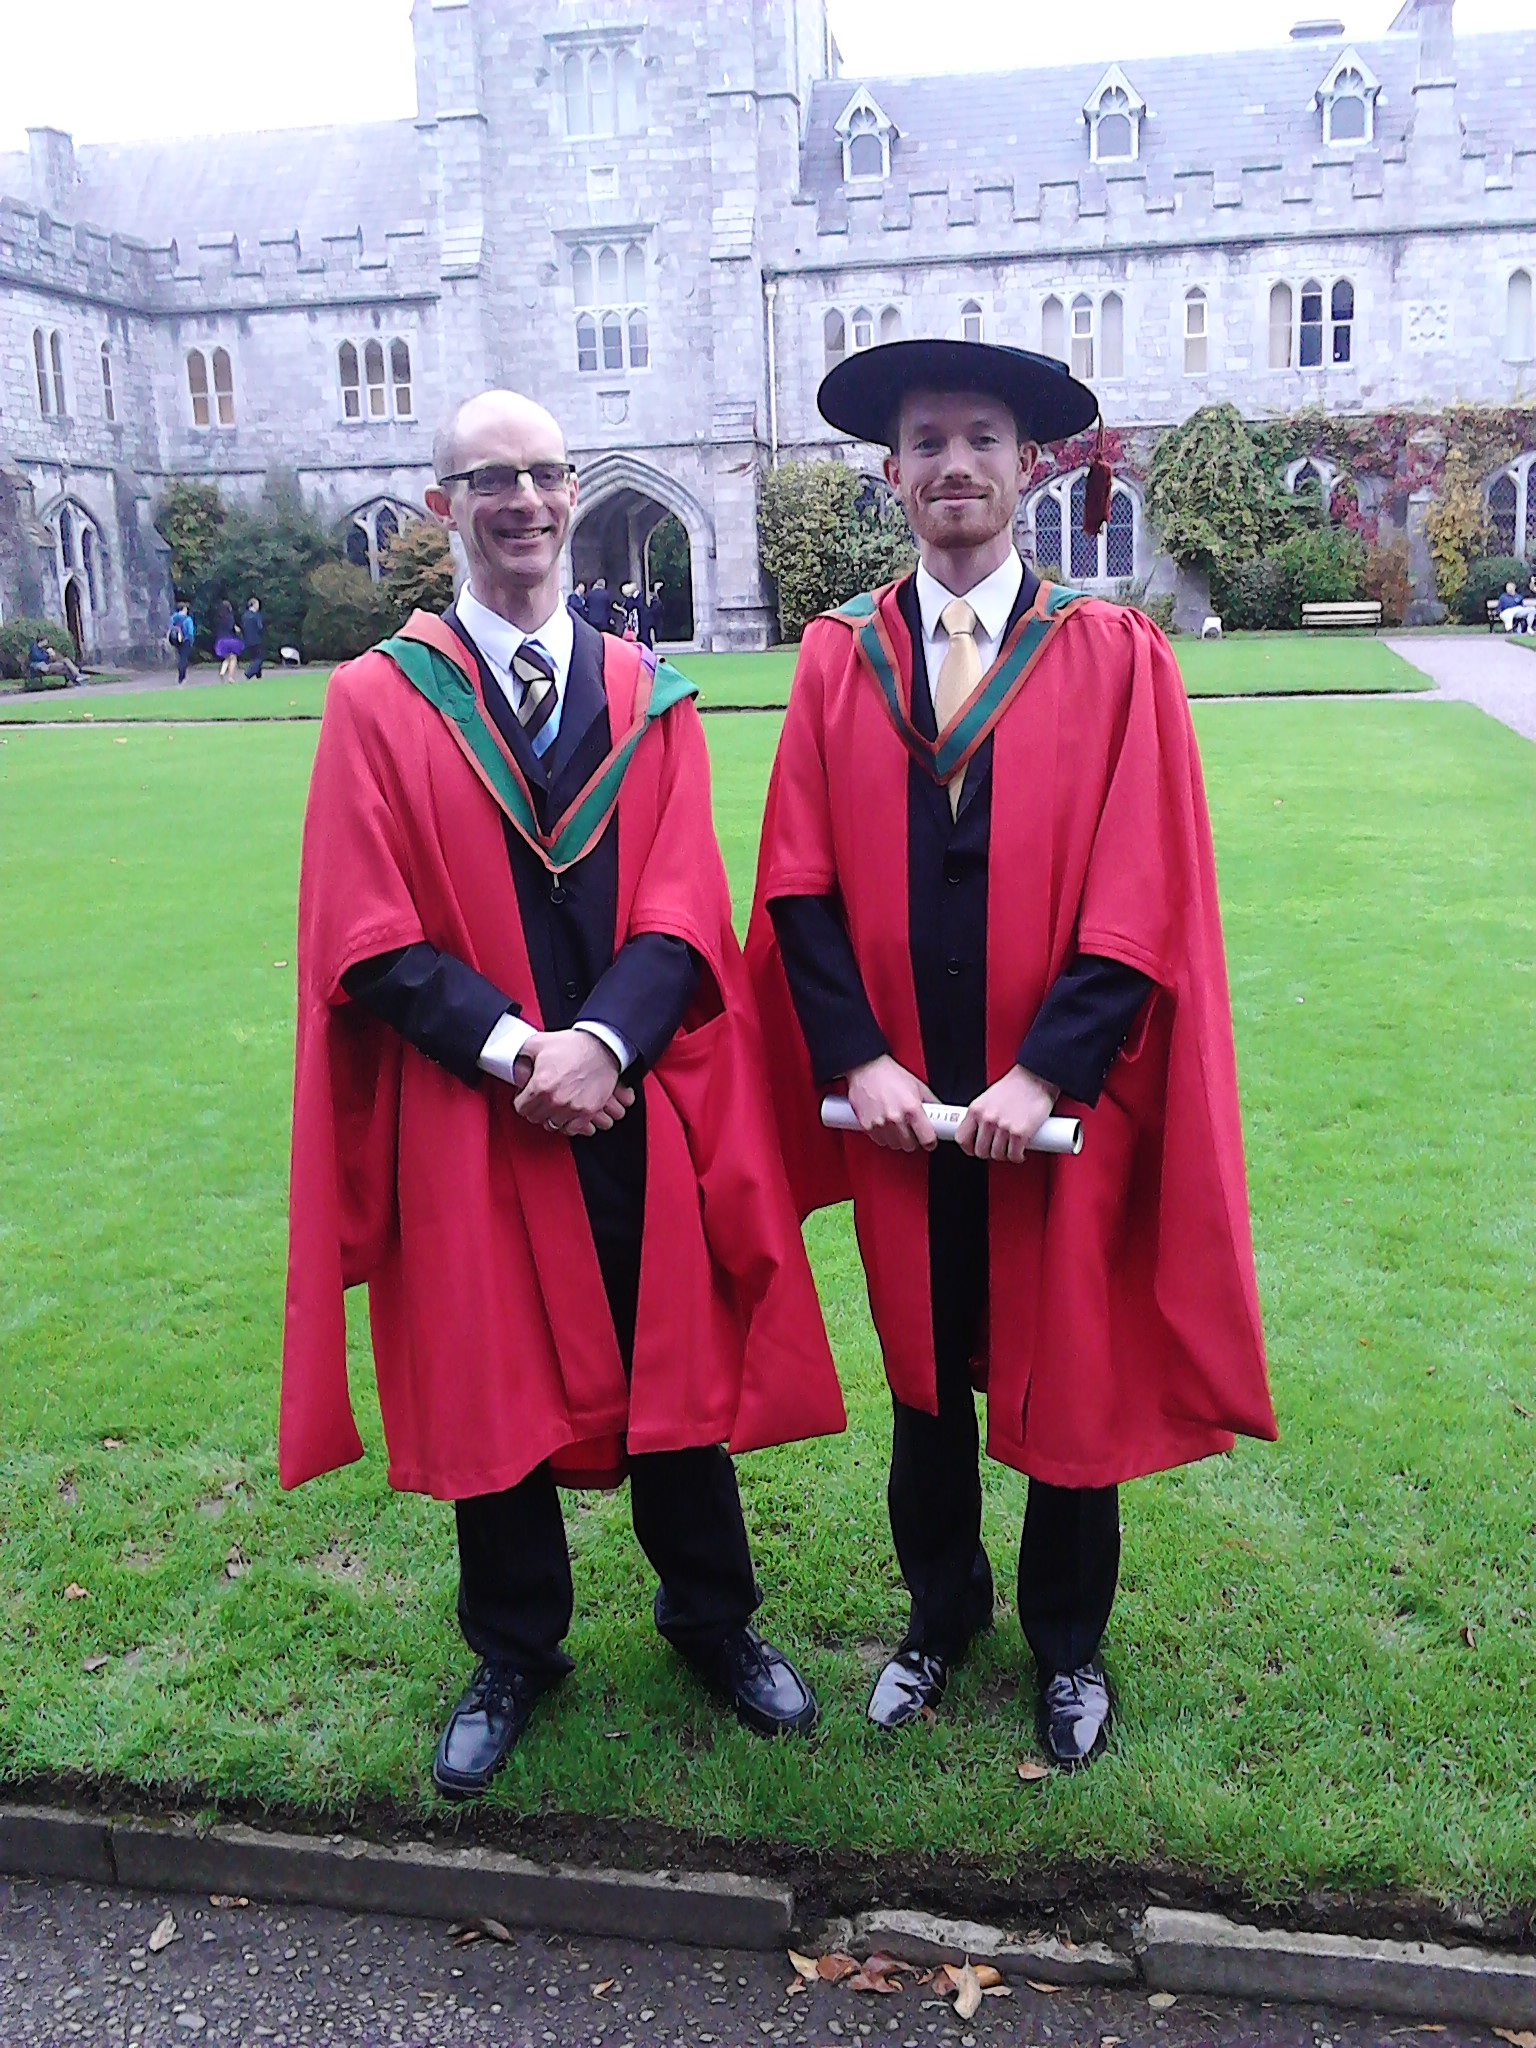 Over 40 Bachelor's, Master's and Doctoral students in Civil & Environmental Engineering were conferred at UCC's recent Autumn Conferrings ceremony.